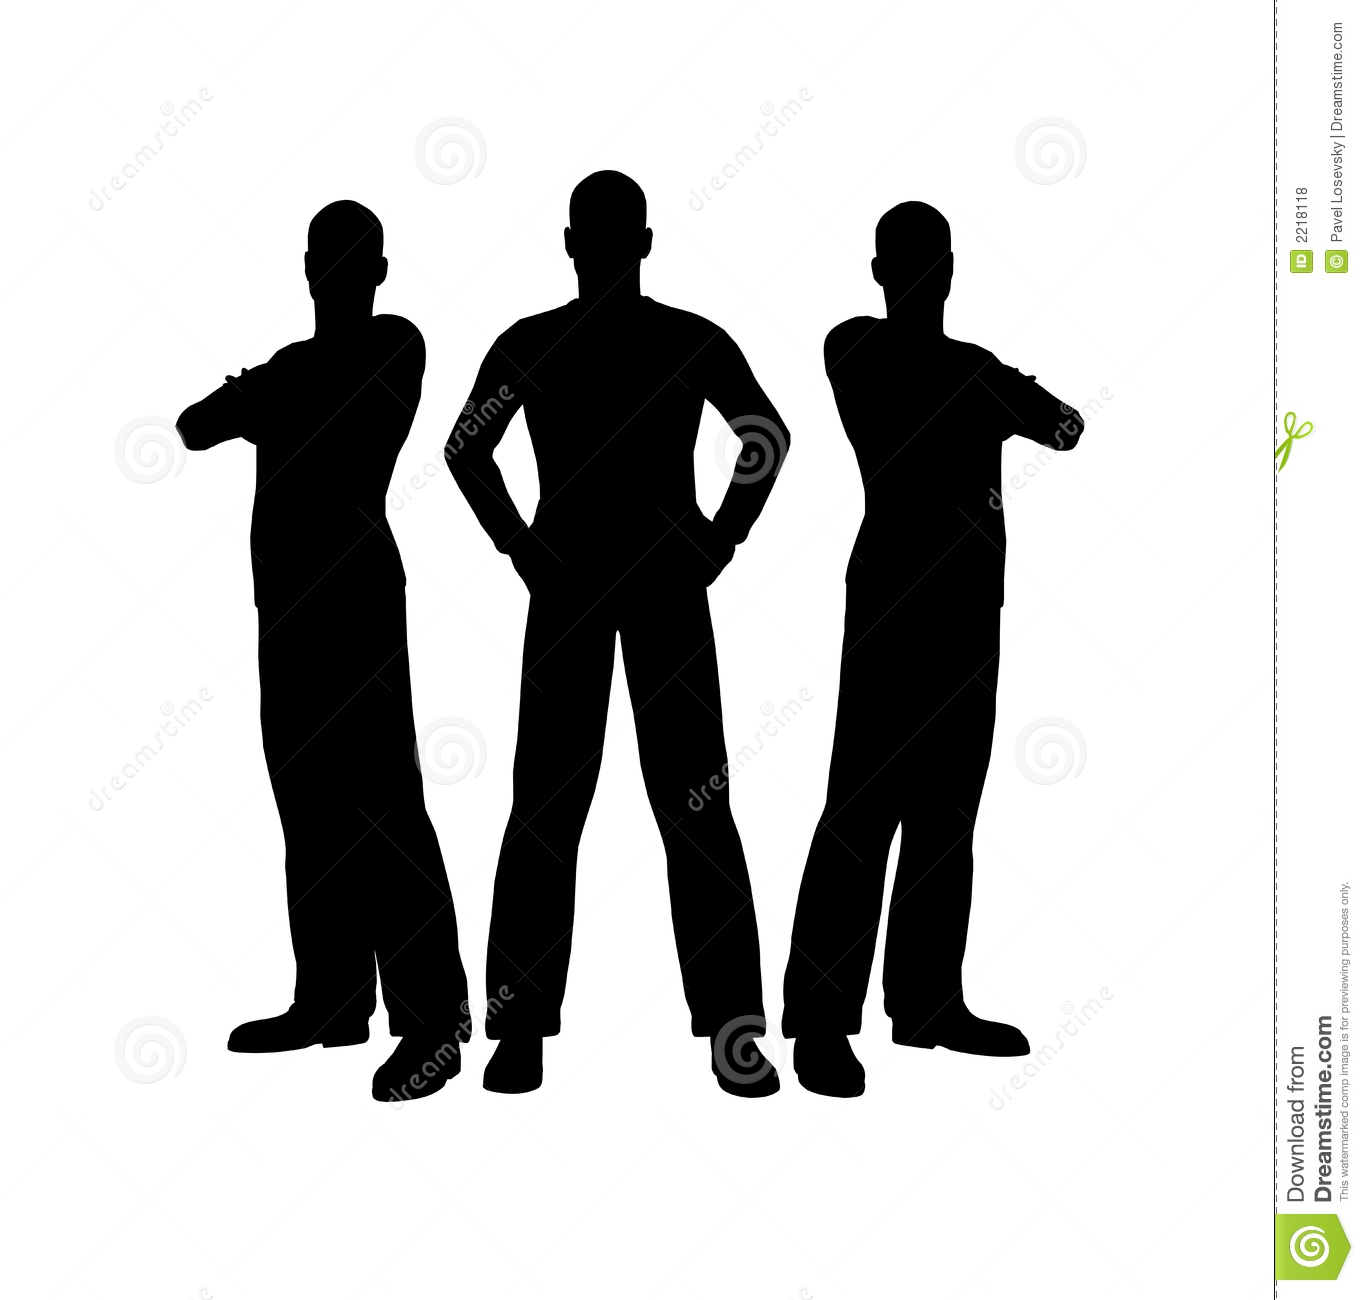 Three Men Silhouette Royalty Free Stock Photos - Image: 2218118